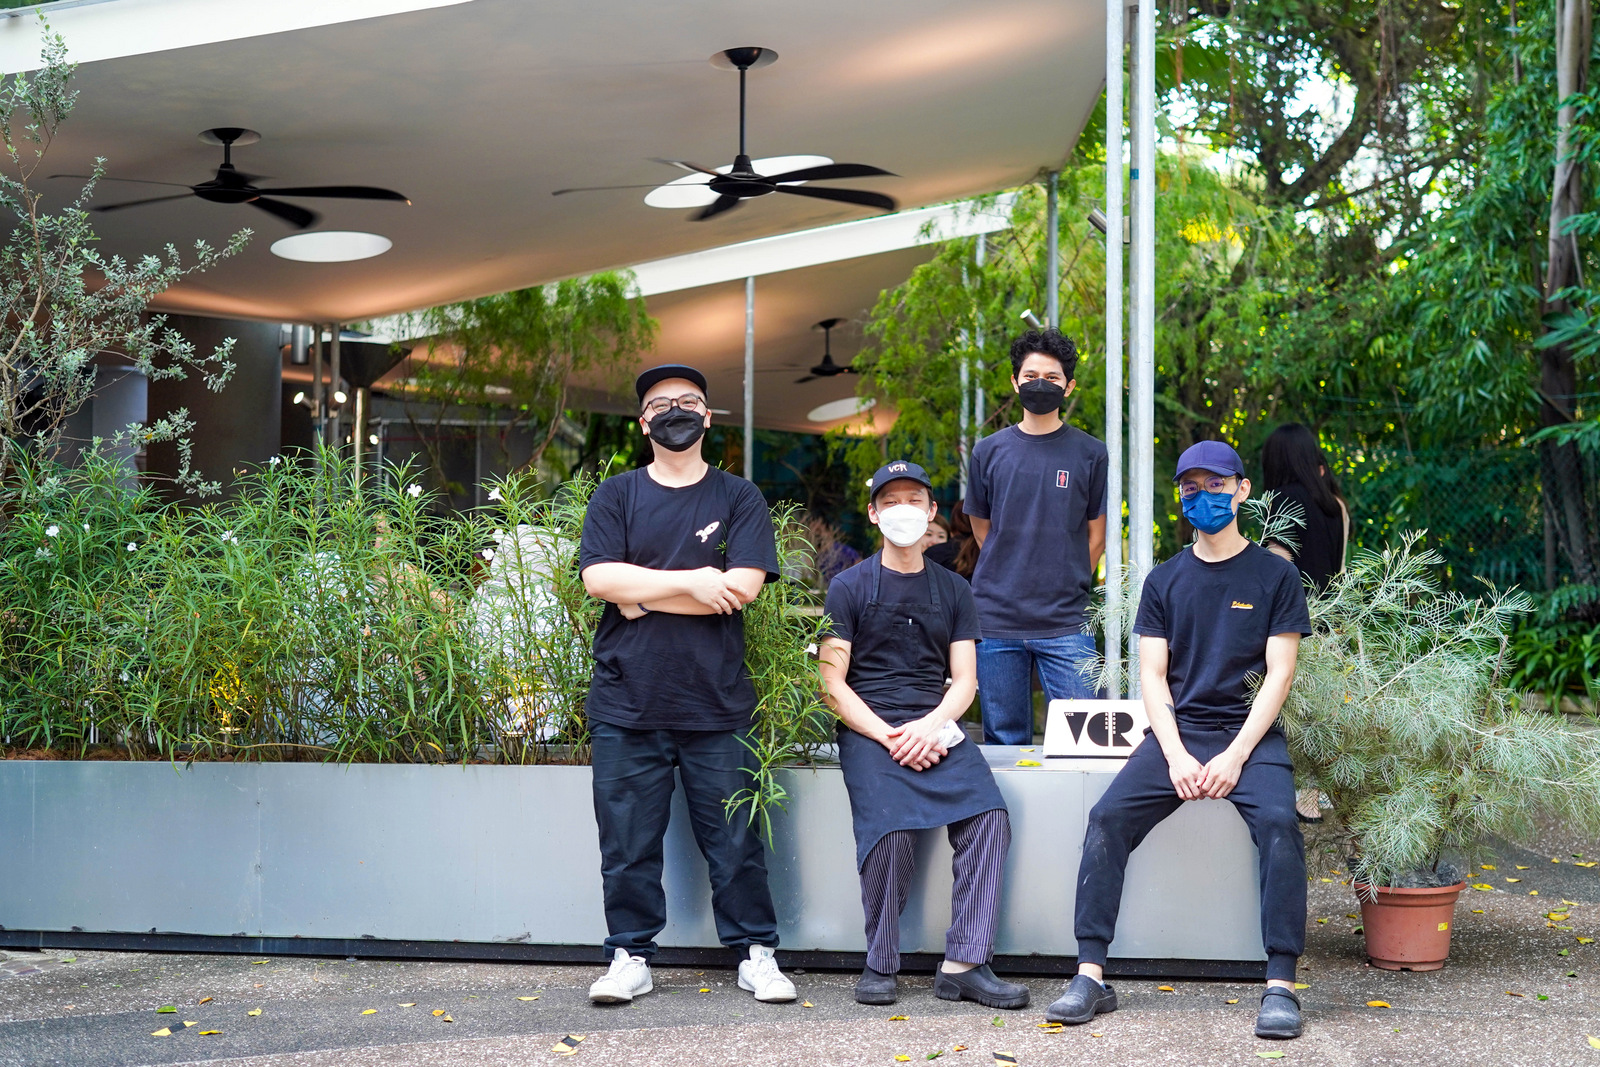 vcr bakehouse: seven secrets behind kl's most popular new bakery this year